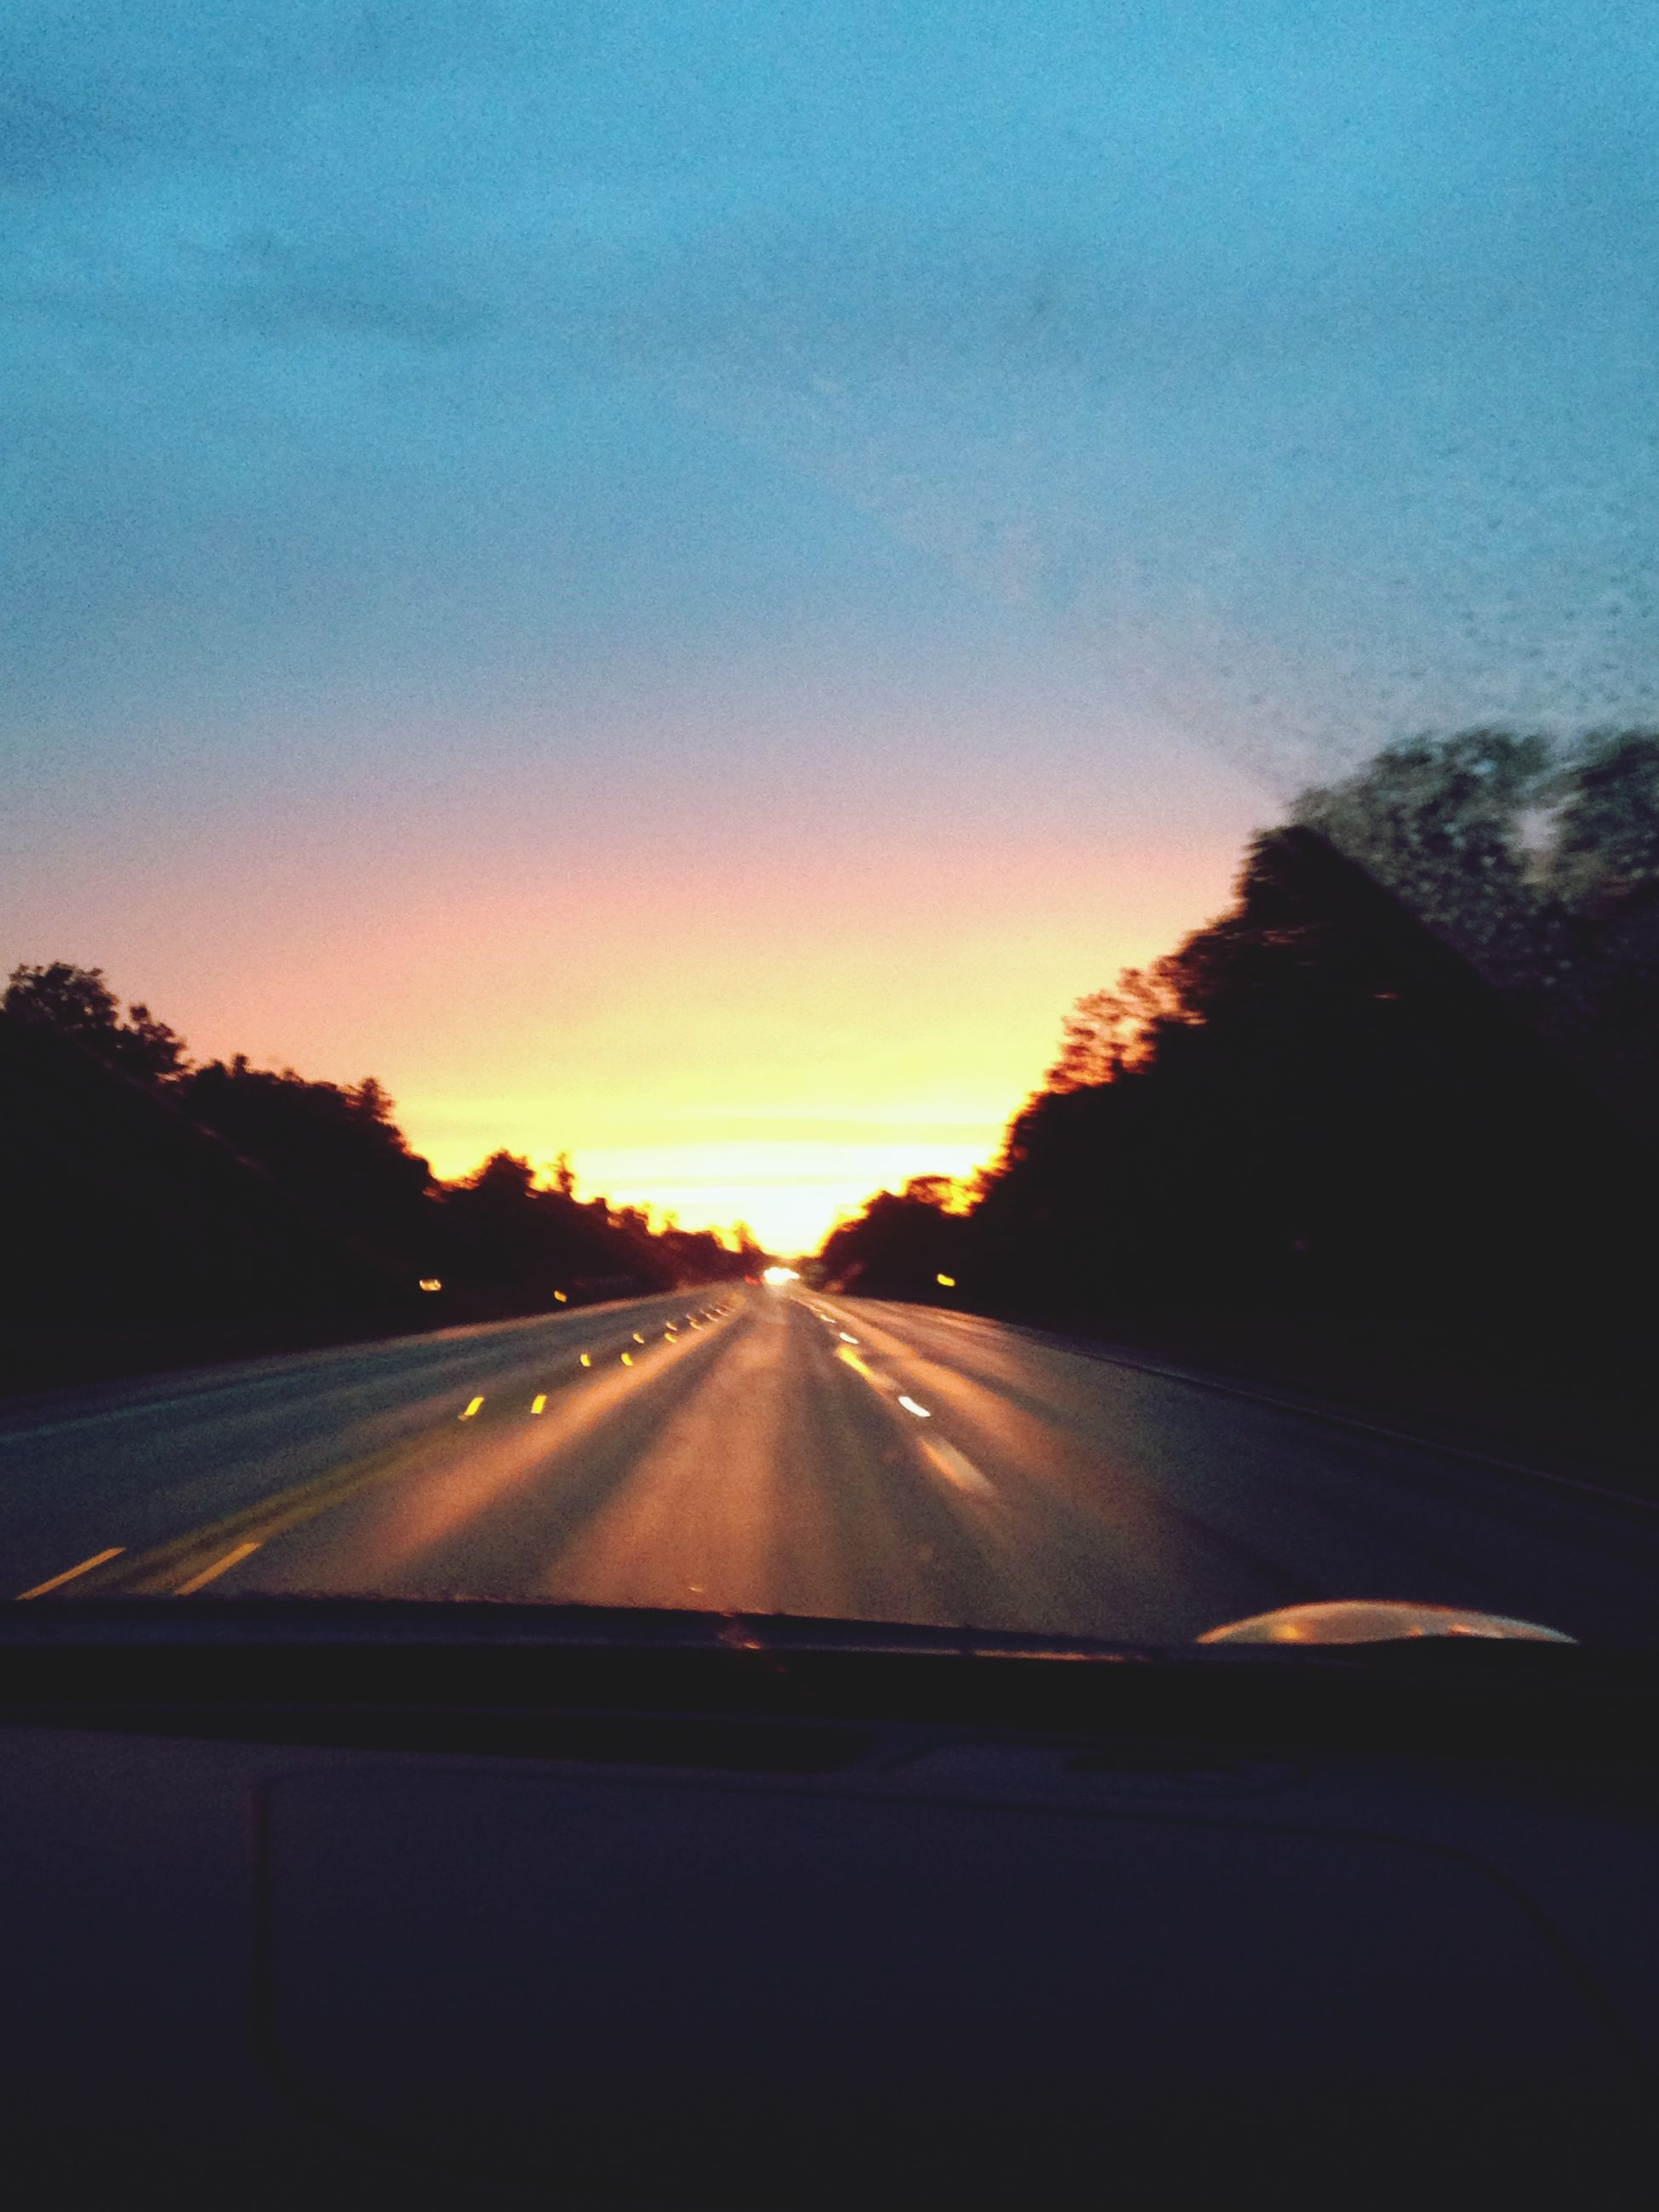 transportation, car, mode of transport, road, windshield, land vehicle, vehicle interior, car interior, glass - material, the way forward, road marking, sunset, transparent, sky, car point of view, tree, diminishing perspective, on the move, travel, road trip